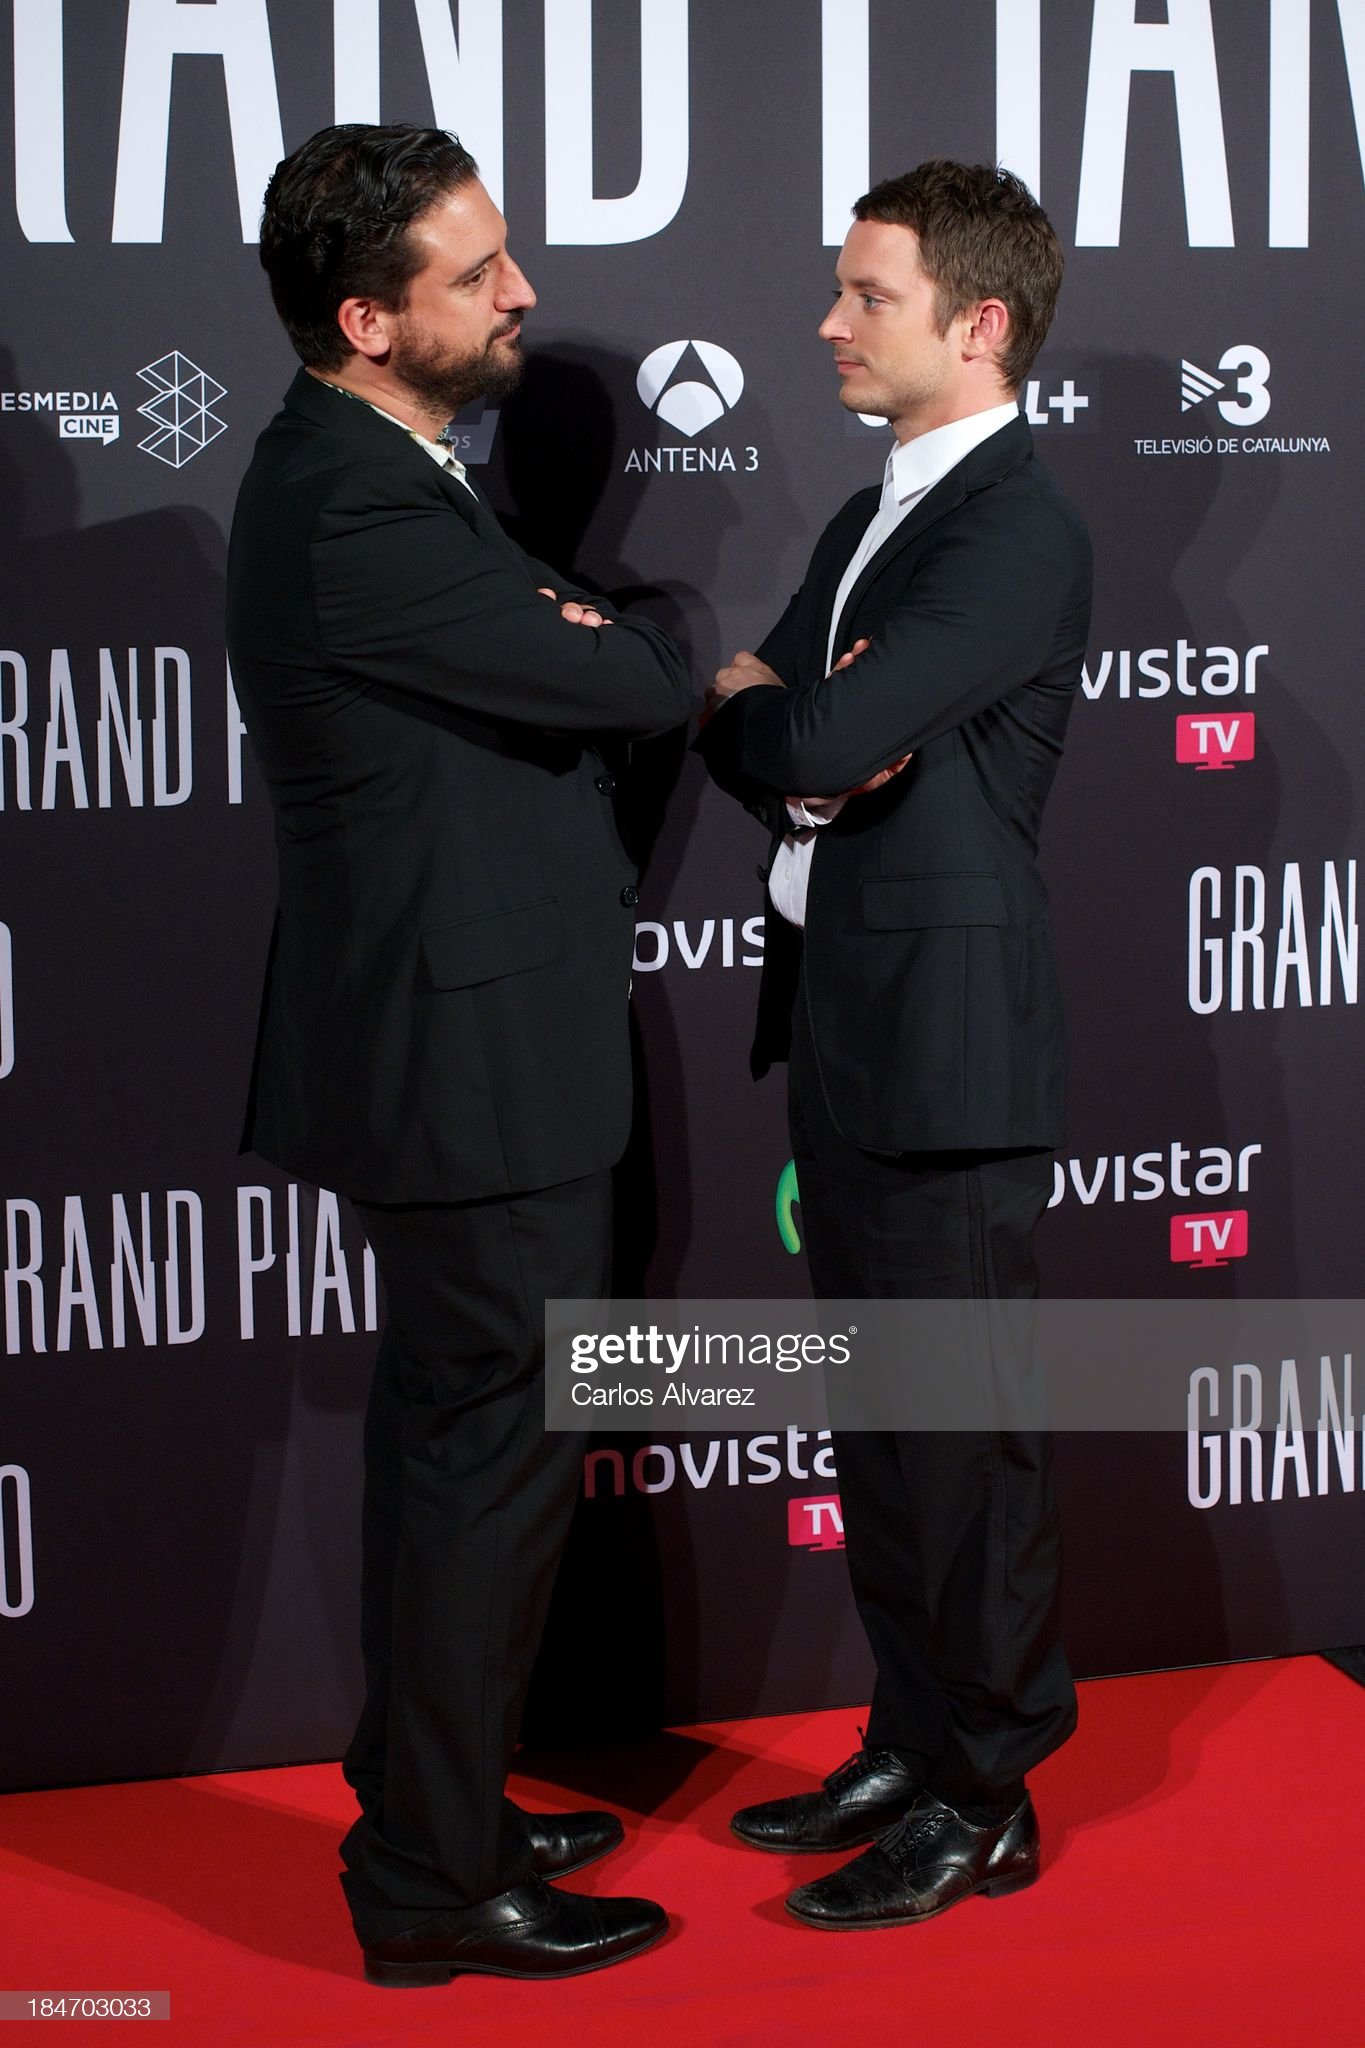 ¿Cuánto mide Eugenio Mira? - Altura Spanish-director-eugenio-mira-and-actor-elijah-wood-attend-grand-at-picture-id184703033?s=2048x2048